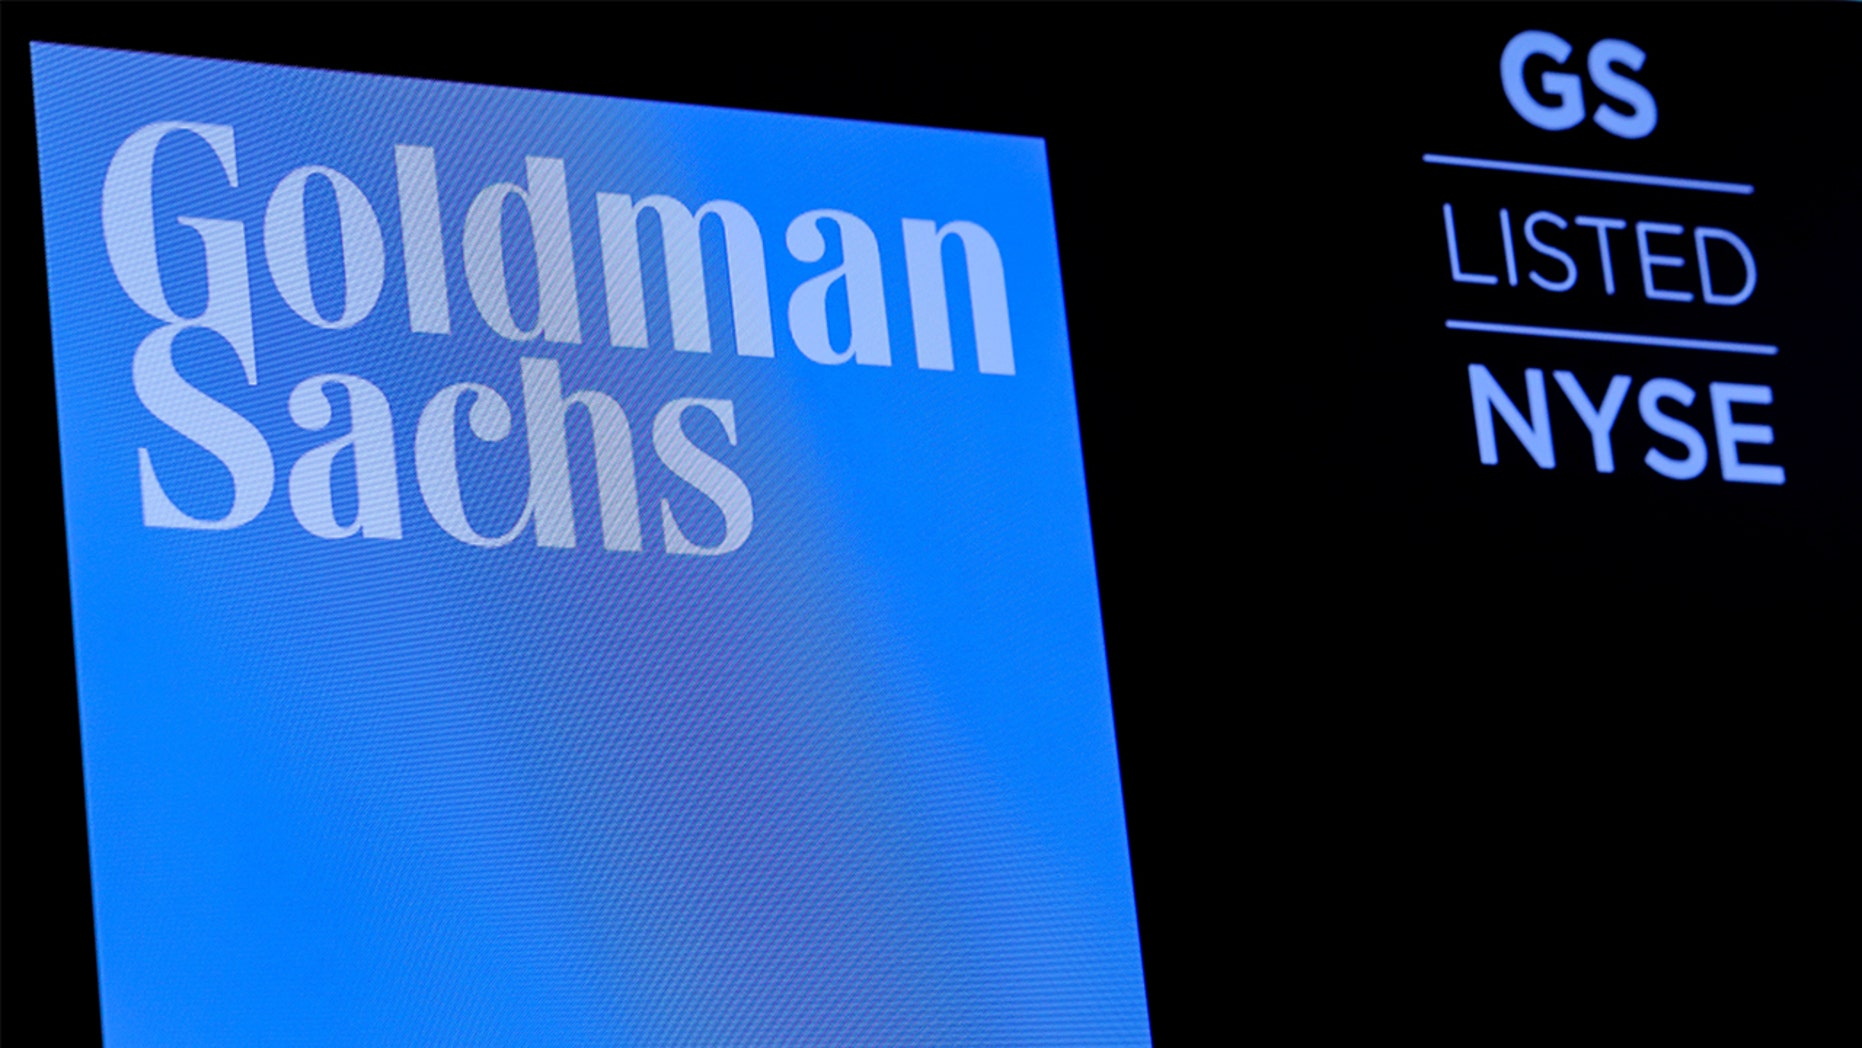 """A gay vice president at financial giant Goldman Sachs, who is suing his former employment because of discrimination, is claiming he was excluded from a conference call because he """"sounds too gay,"""" according to reports. (REUTERS)"""